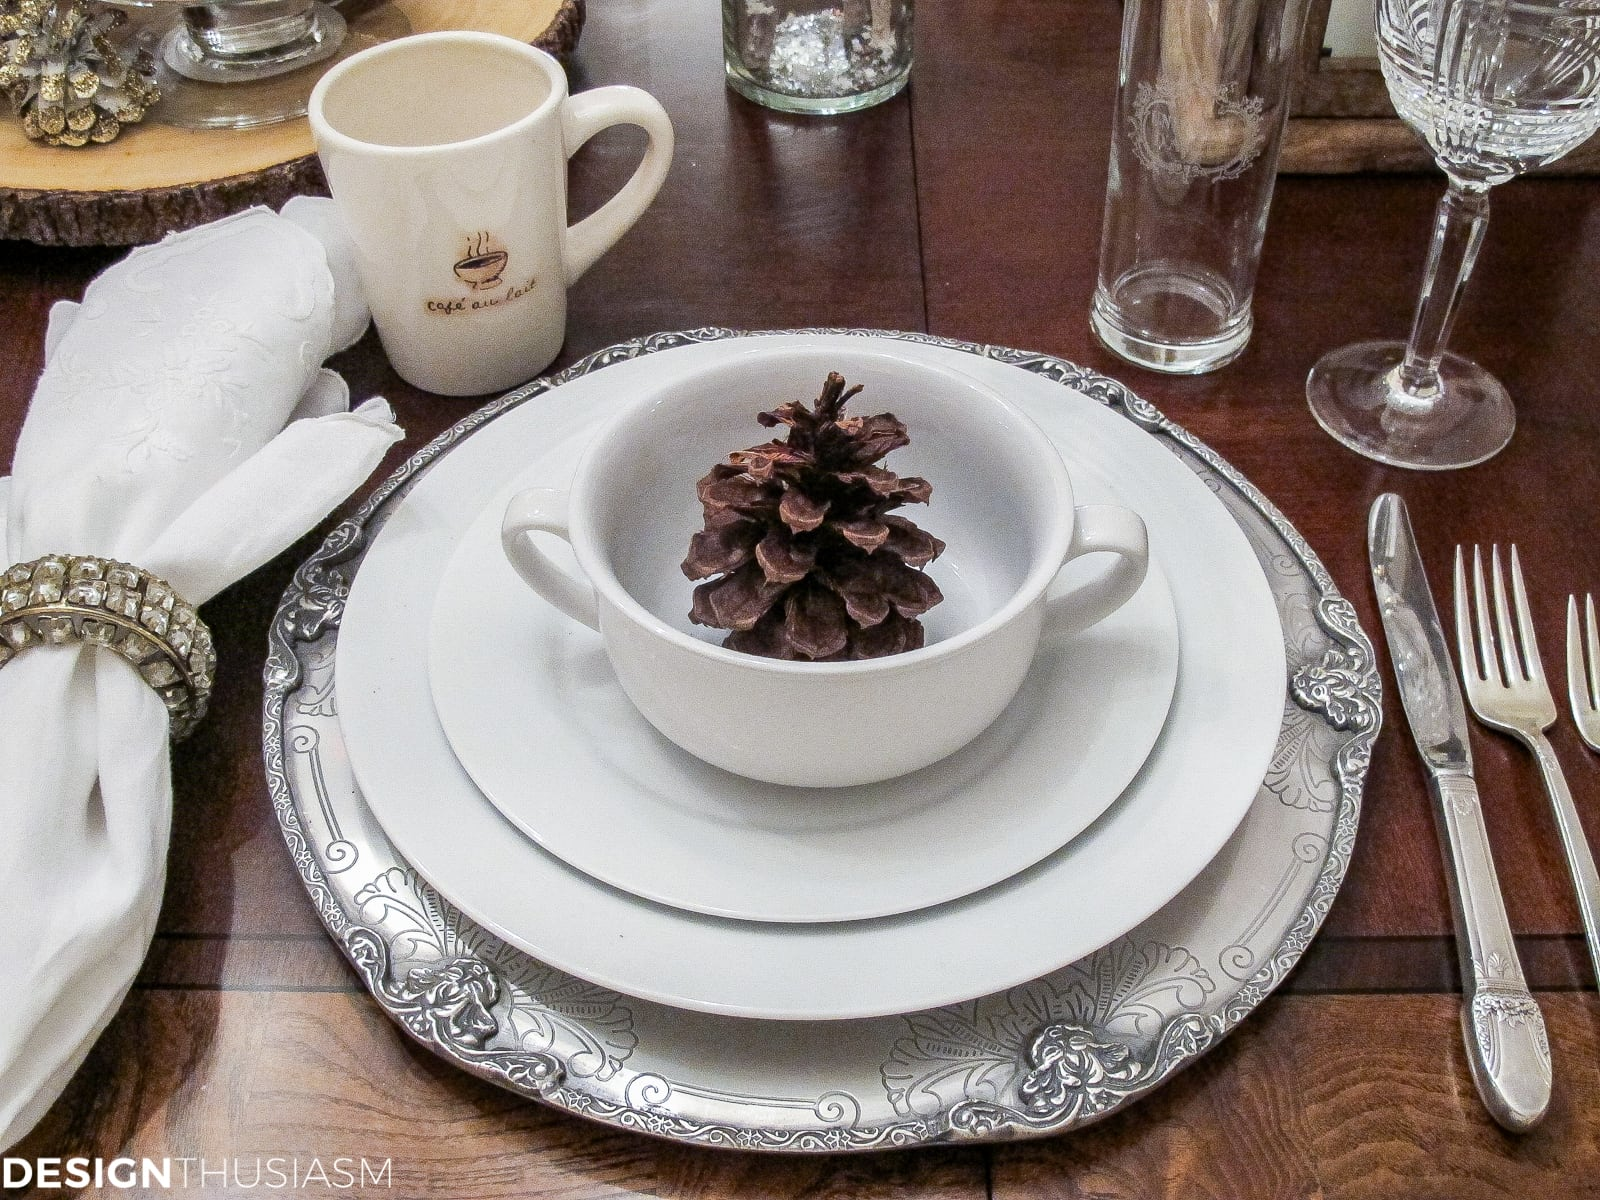 Winter Decorations Add Flavor to a White Tablescape   Designthuisasm.com